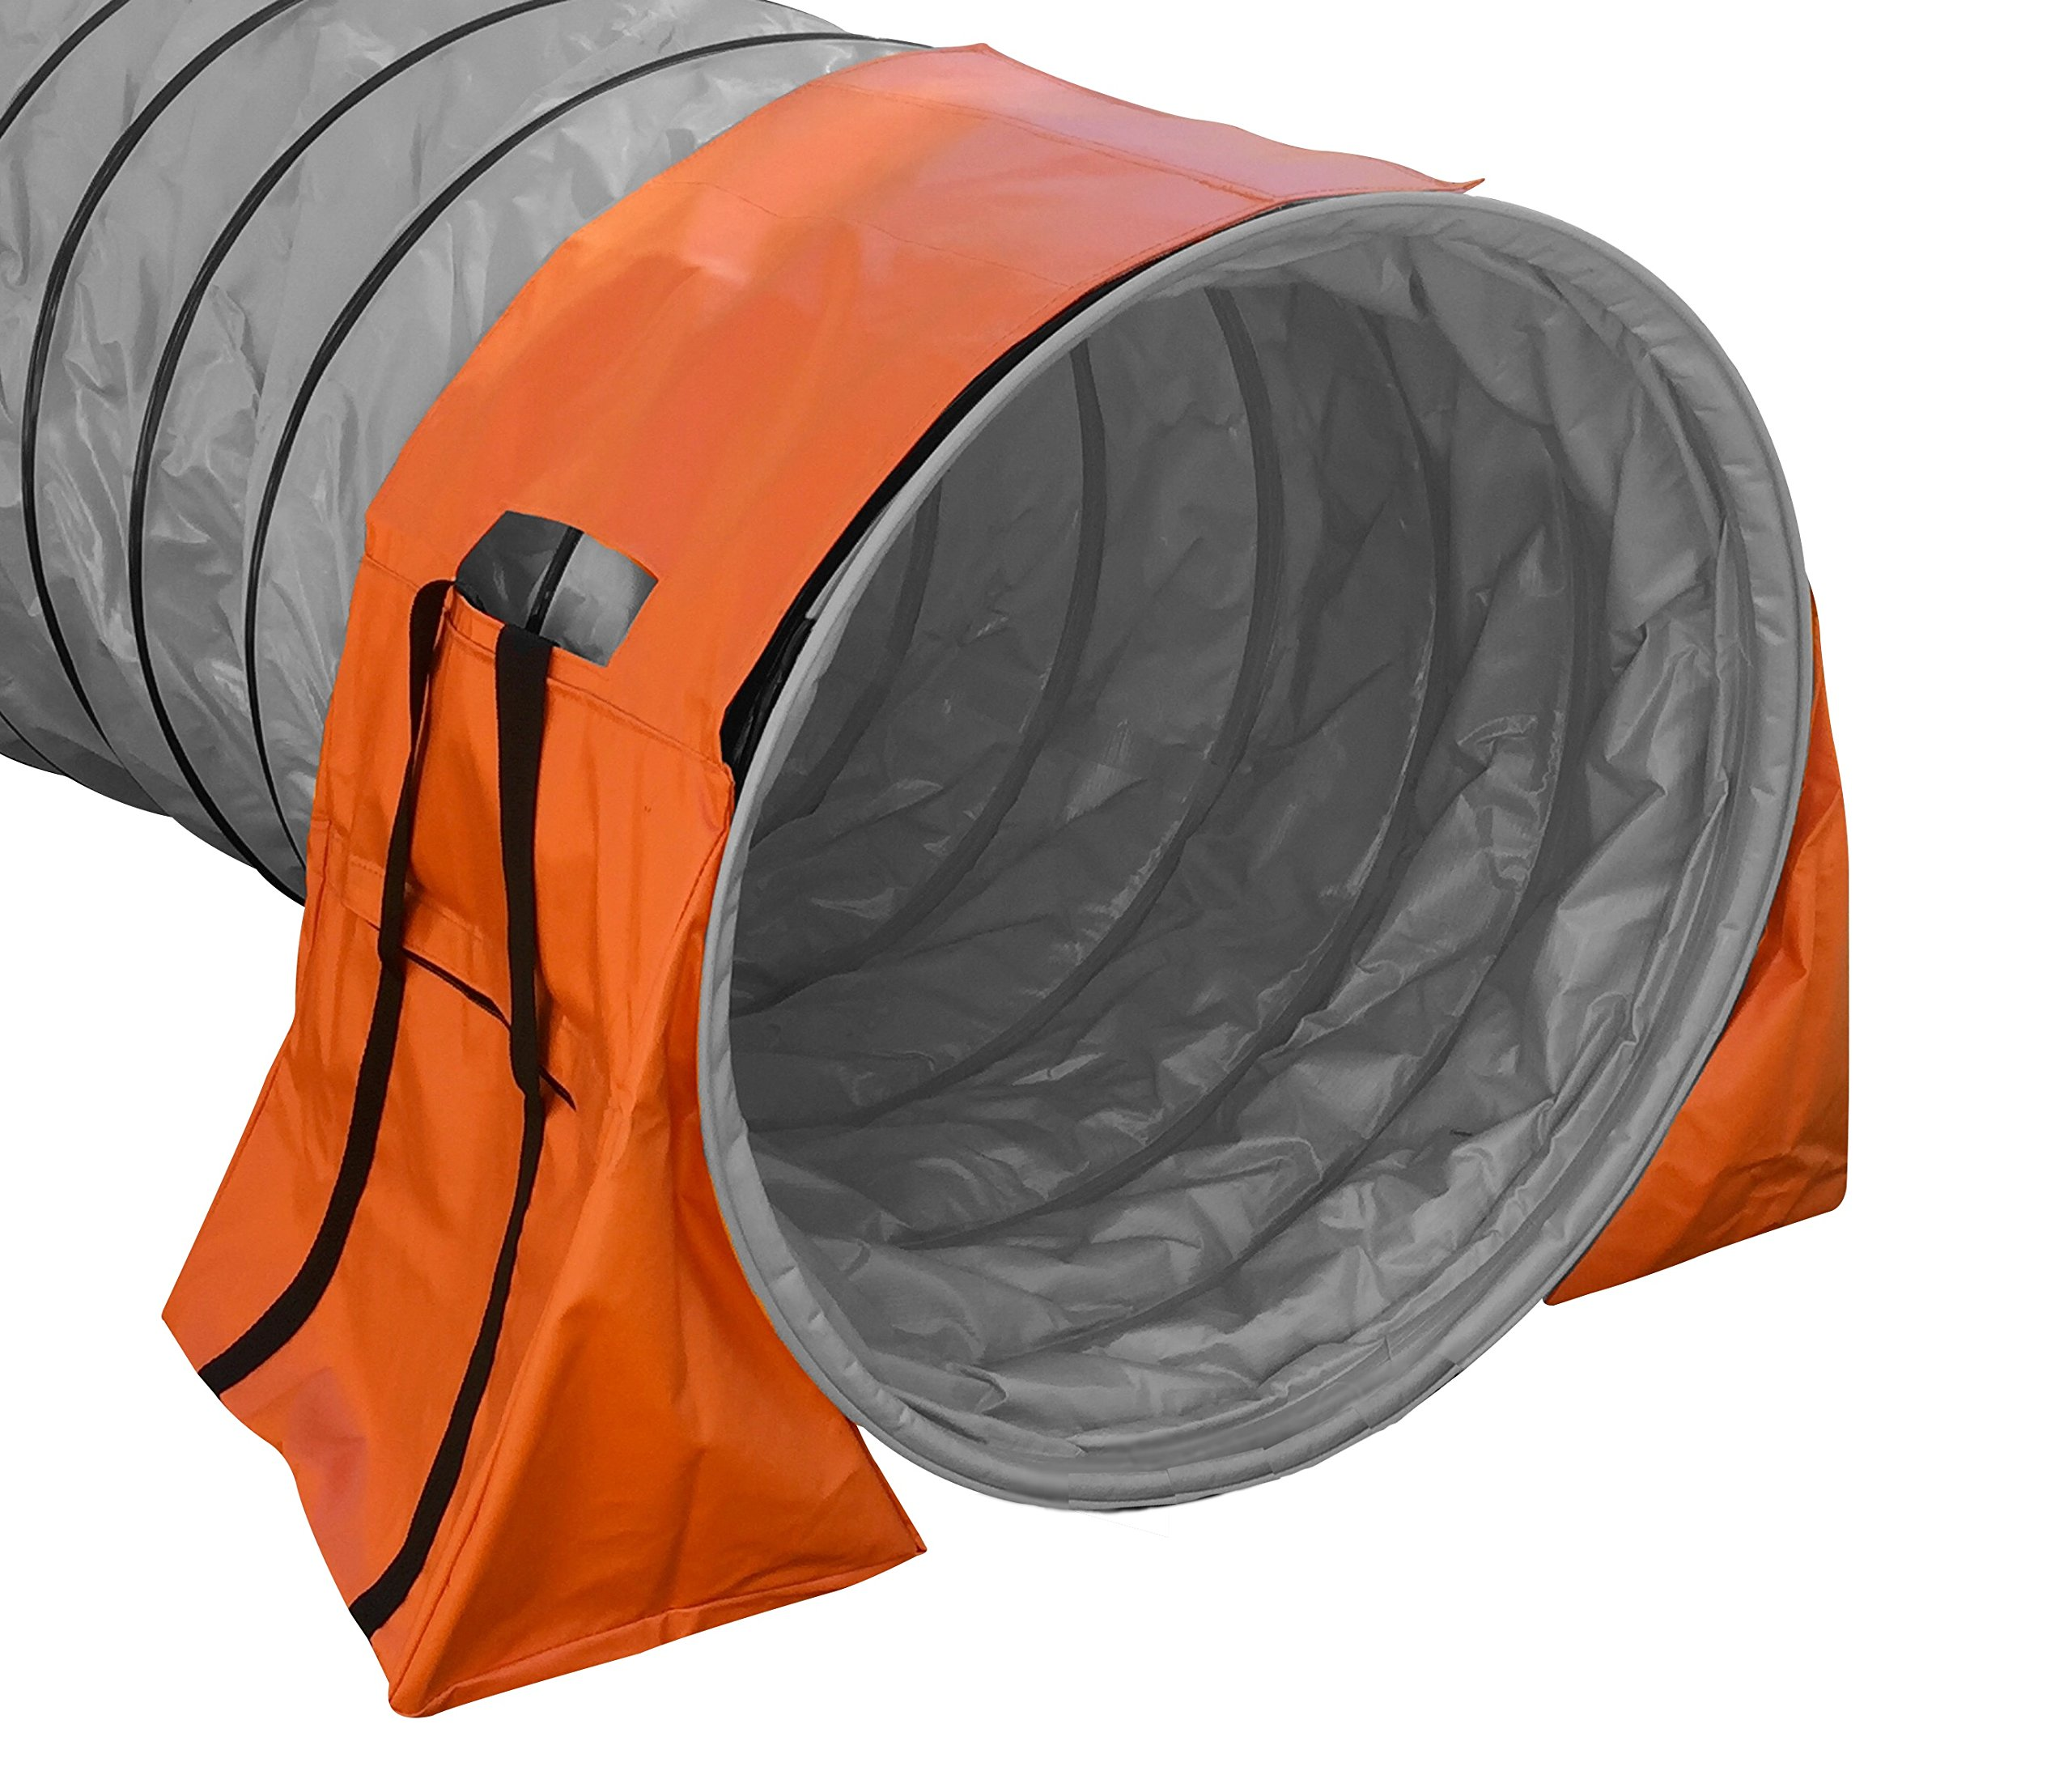 Get Quotations Agility Tunnel Bag Holder Non Constricting Saddlebags For Ilizing Dog Equipment Indoor